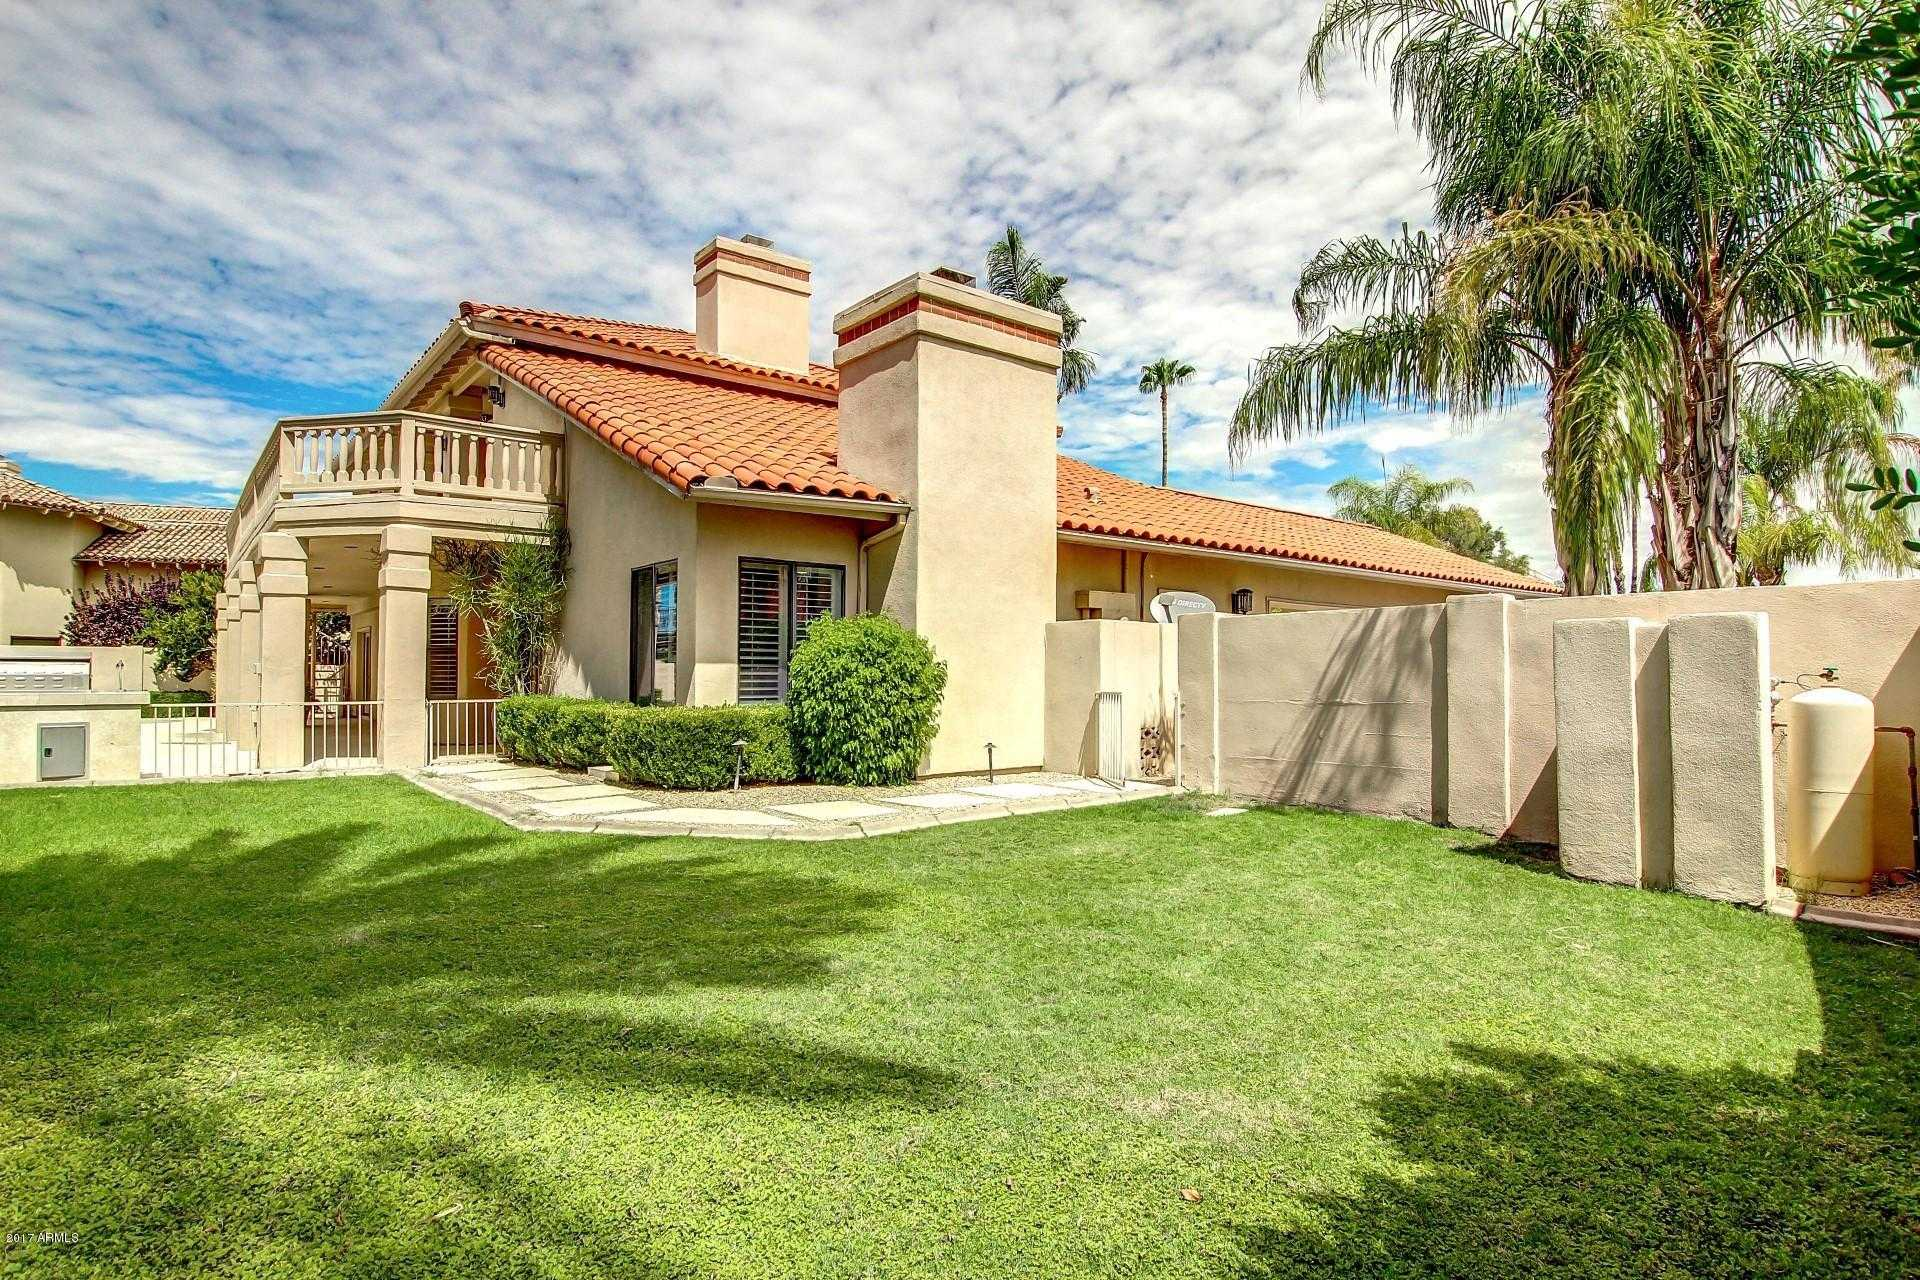 $847,500 - 4Br/5Ba - Home for Sale in Singletree Ranch, Paradise Valley